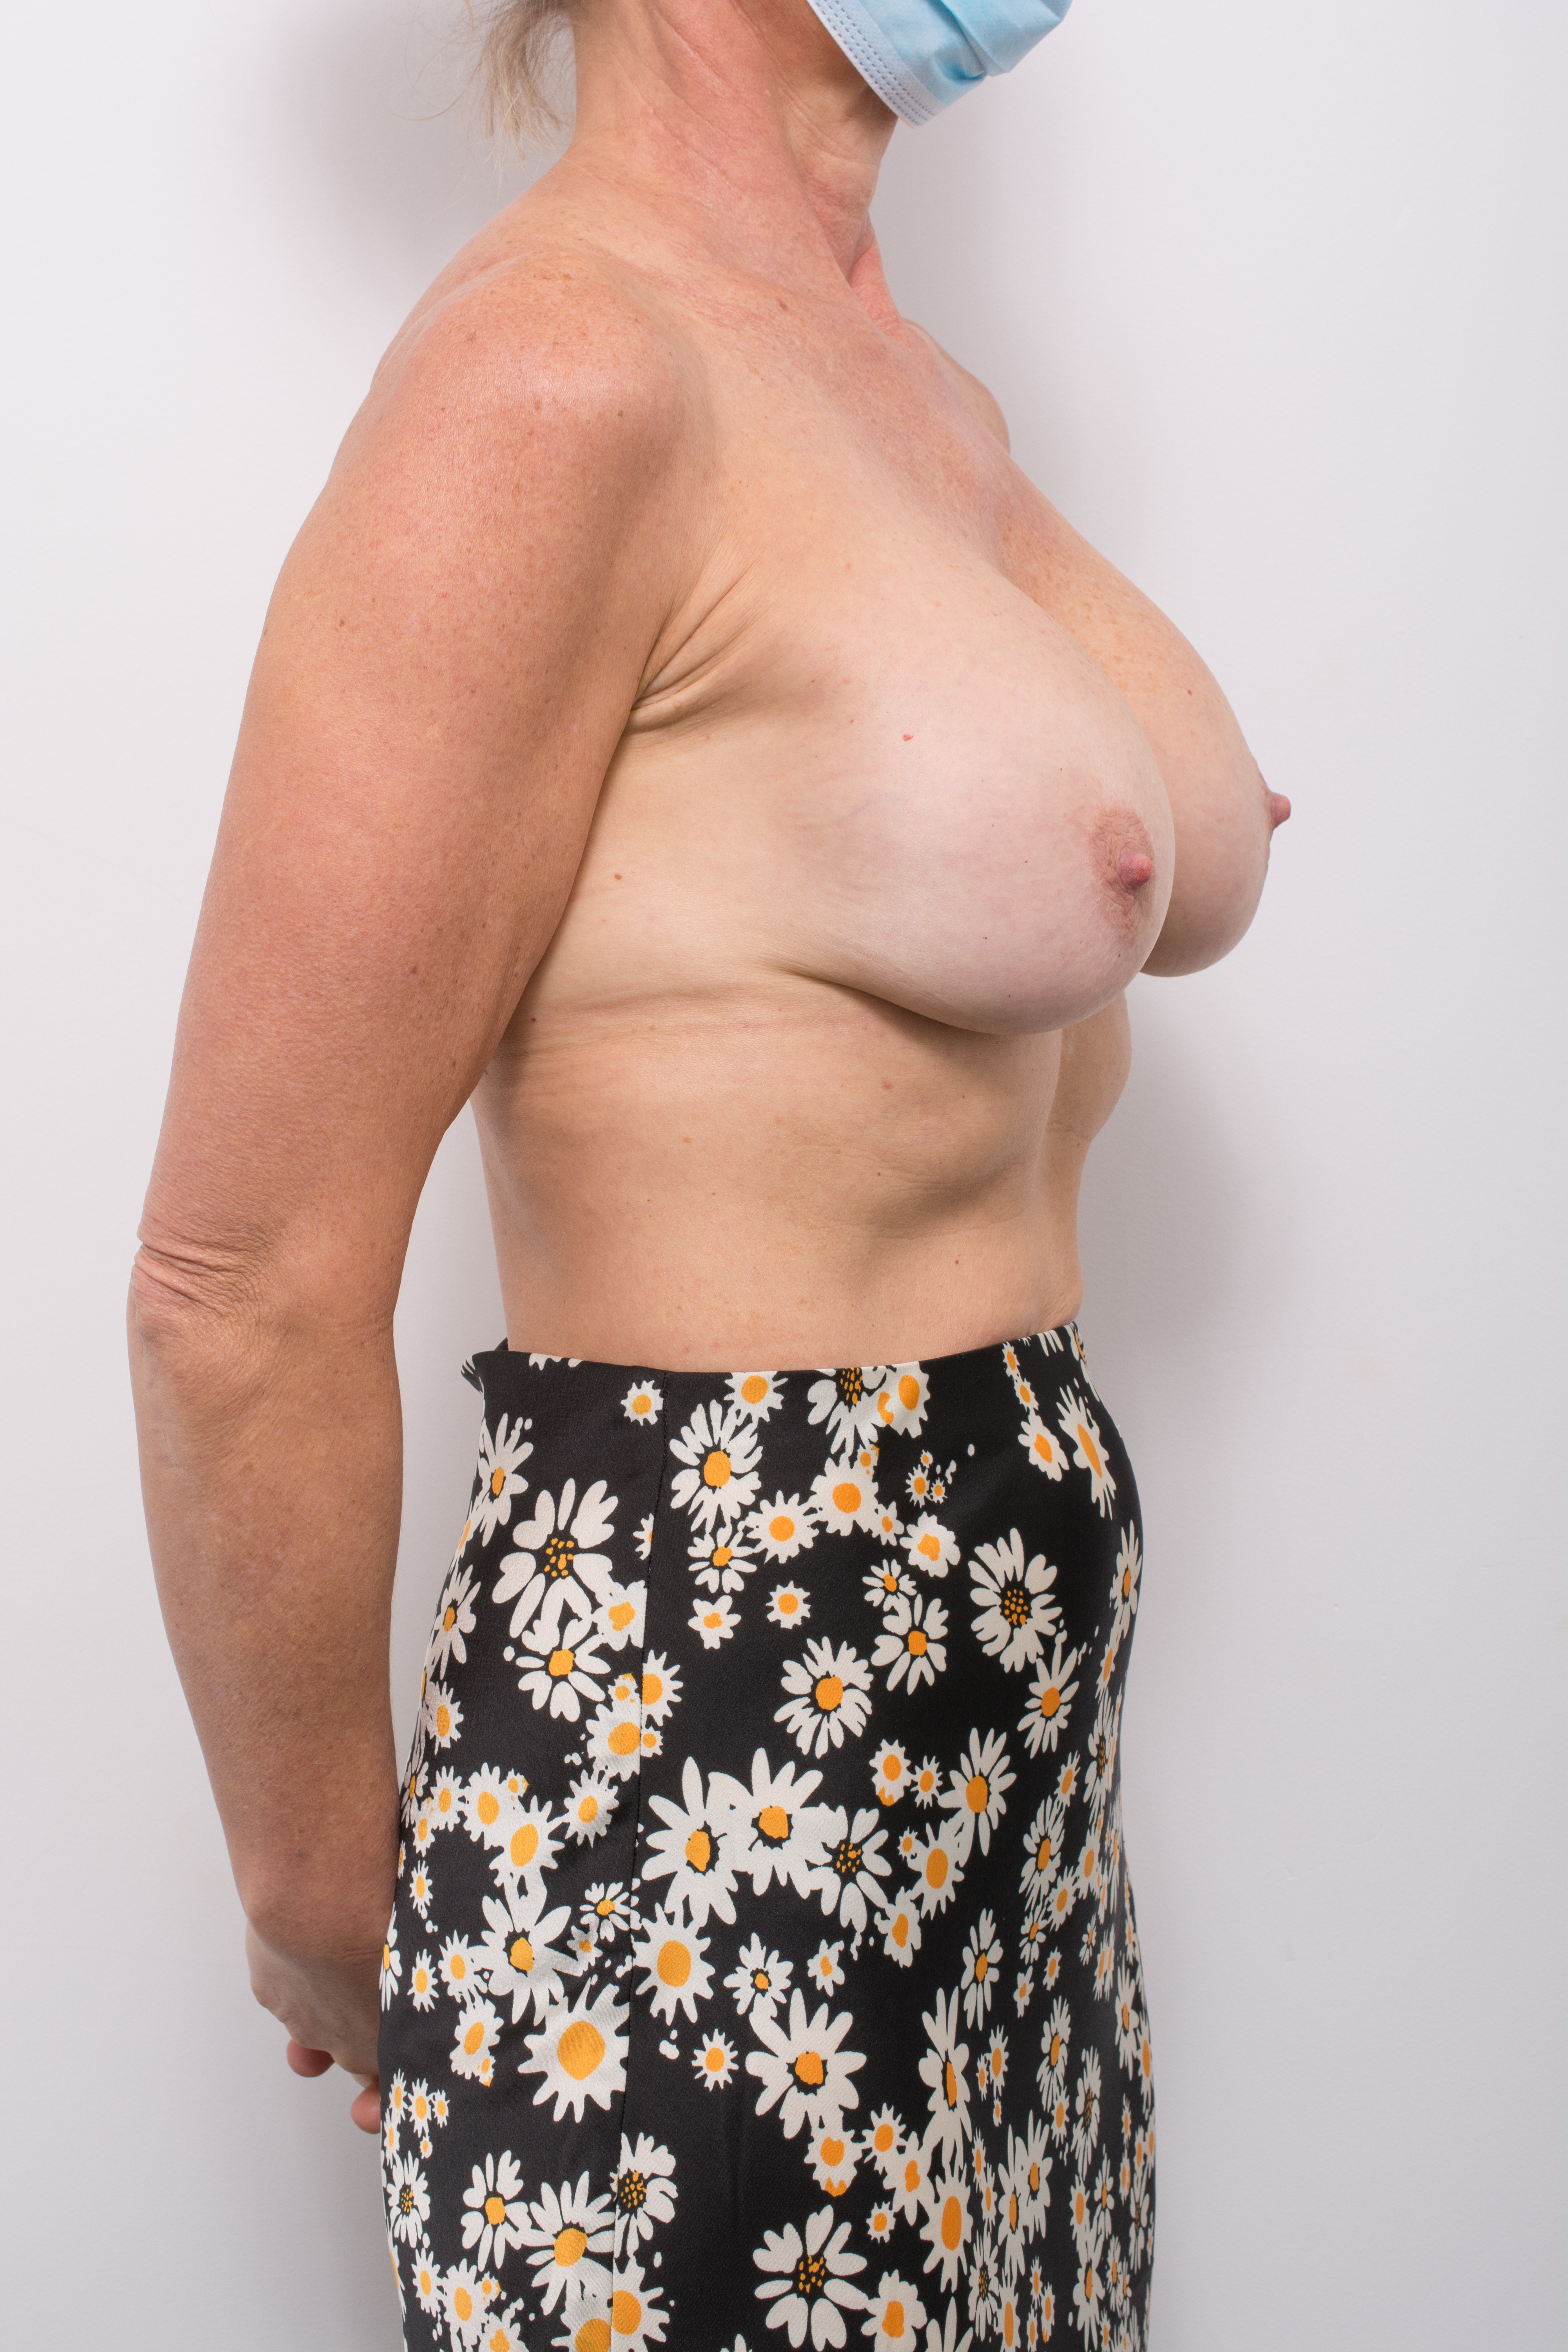 pre op removal of breast implants and mastopexy (2 of 5) (1)